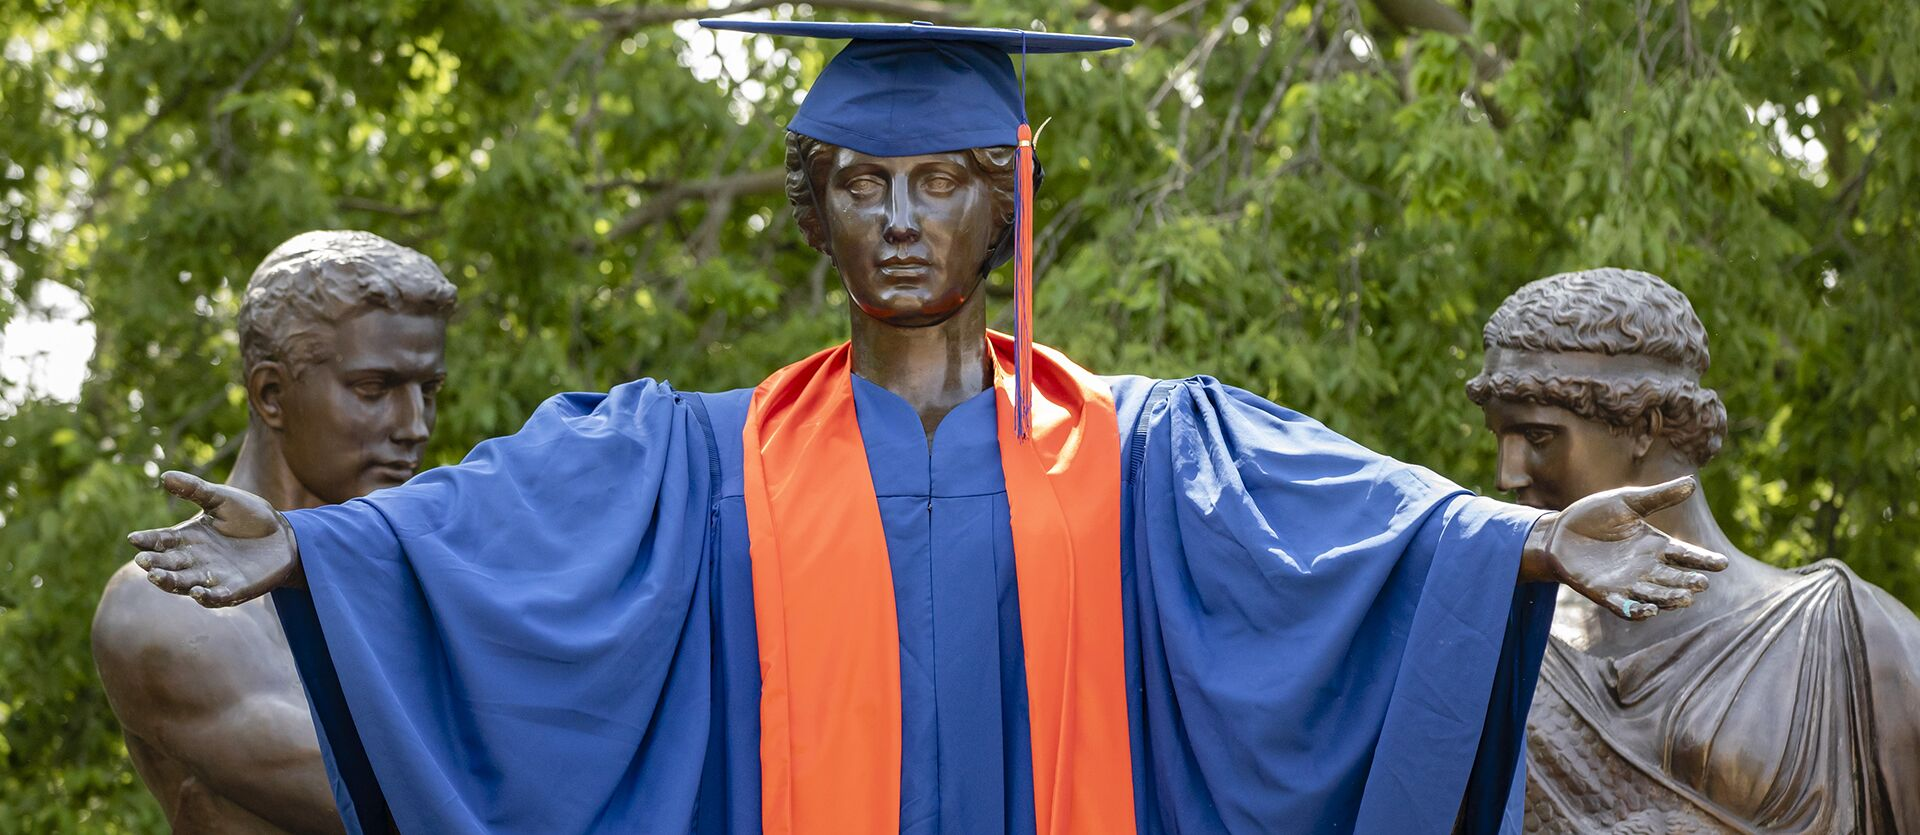 The Alma Mater statue, dressed in a blue and orange cap and gown